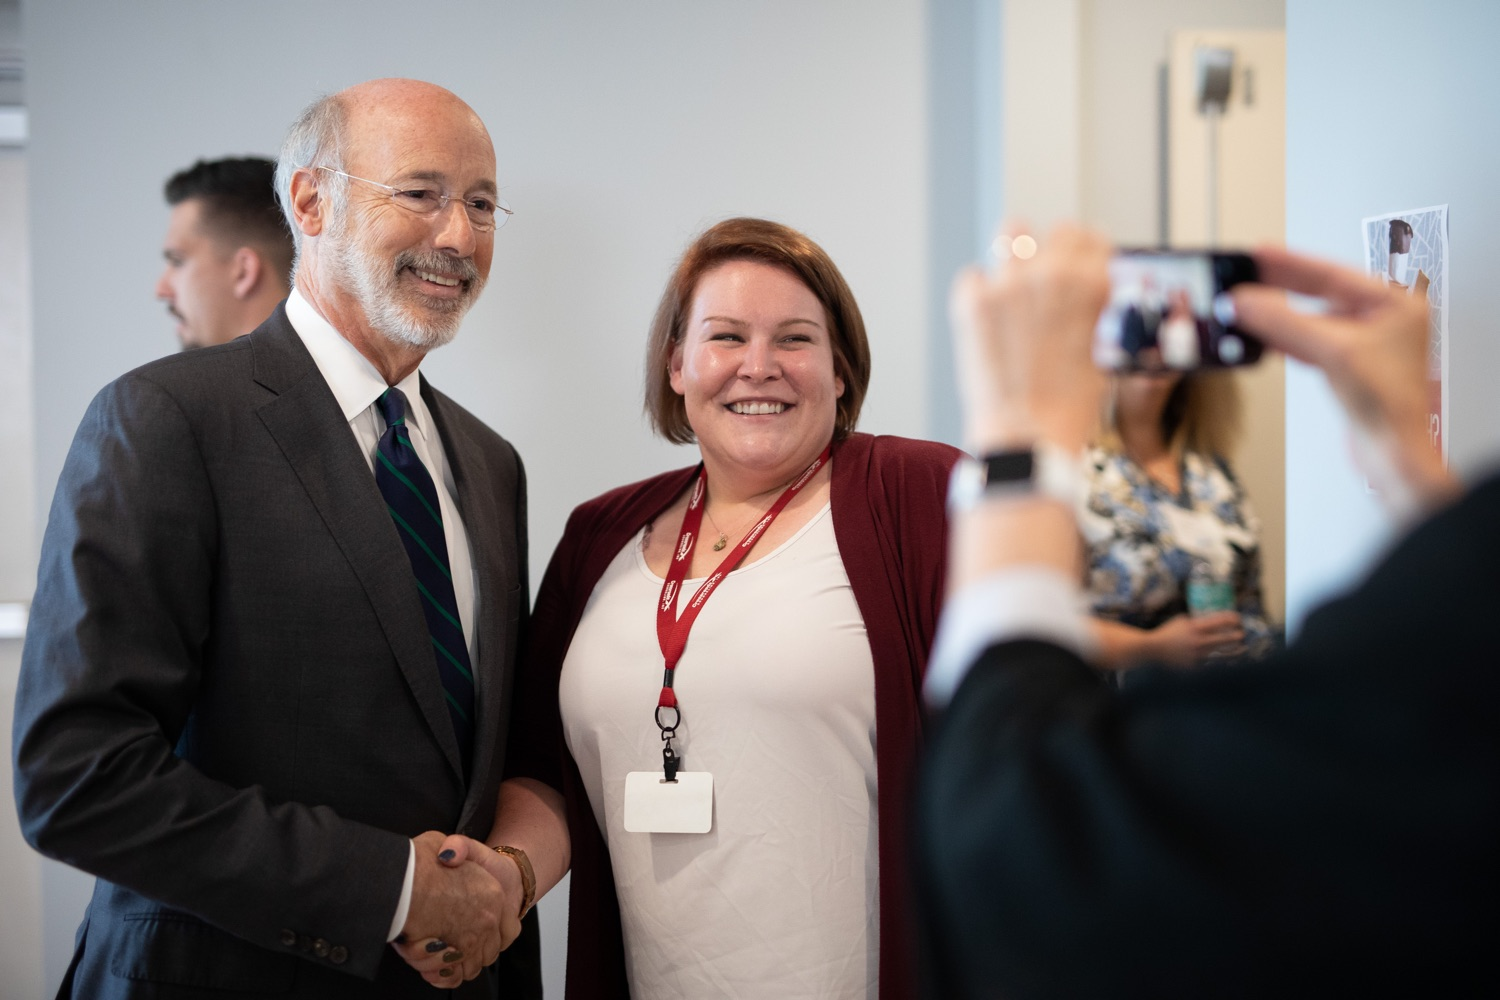 """<a href=""""https://filesource.wostreaming.net/commonwealthofpa/photo/17467_gov_opioids_dz_010.JPG"""" target=""""_blank"""">⇣Download Photo<br></a>Boalsburg, PA  Governor Tom Wolf posing for a photo with summit attendees. Governor Tom Wolf today kicked off his administrations first Opioid Command Center Opioid Summit: Think Globally, Act Locally, which brought together 200 individuals helping their communities fight the opioid crisis, including community organizations, non-profits, schools, health care workers, addiction and recovery specialists, and families affected by the opioid crisis.  Tuesday, October 1, 2019"""